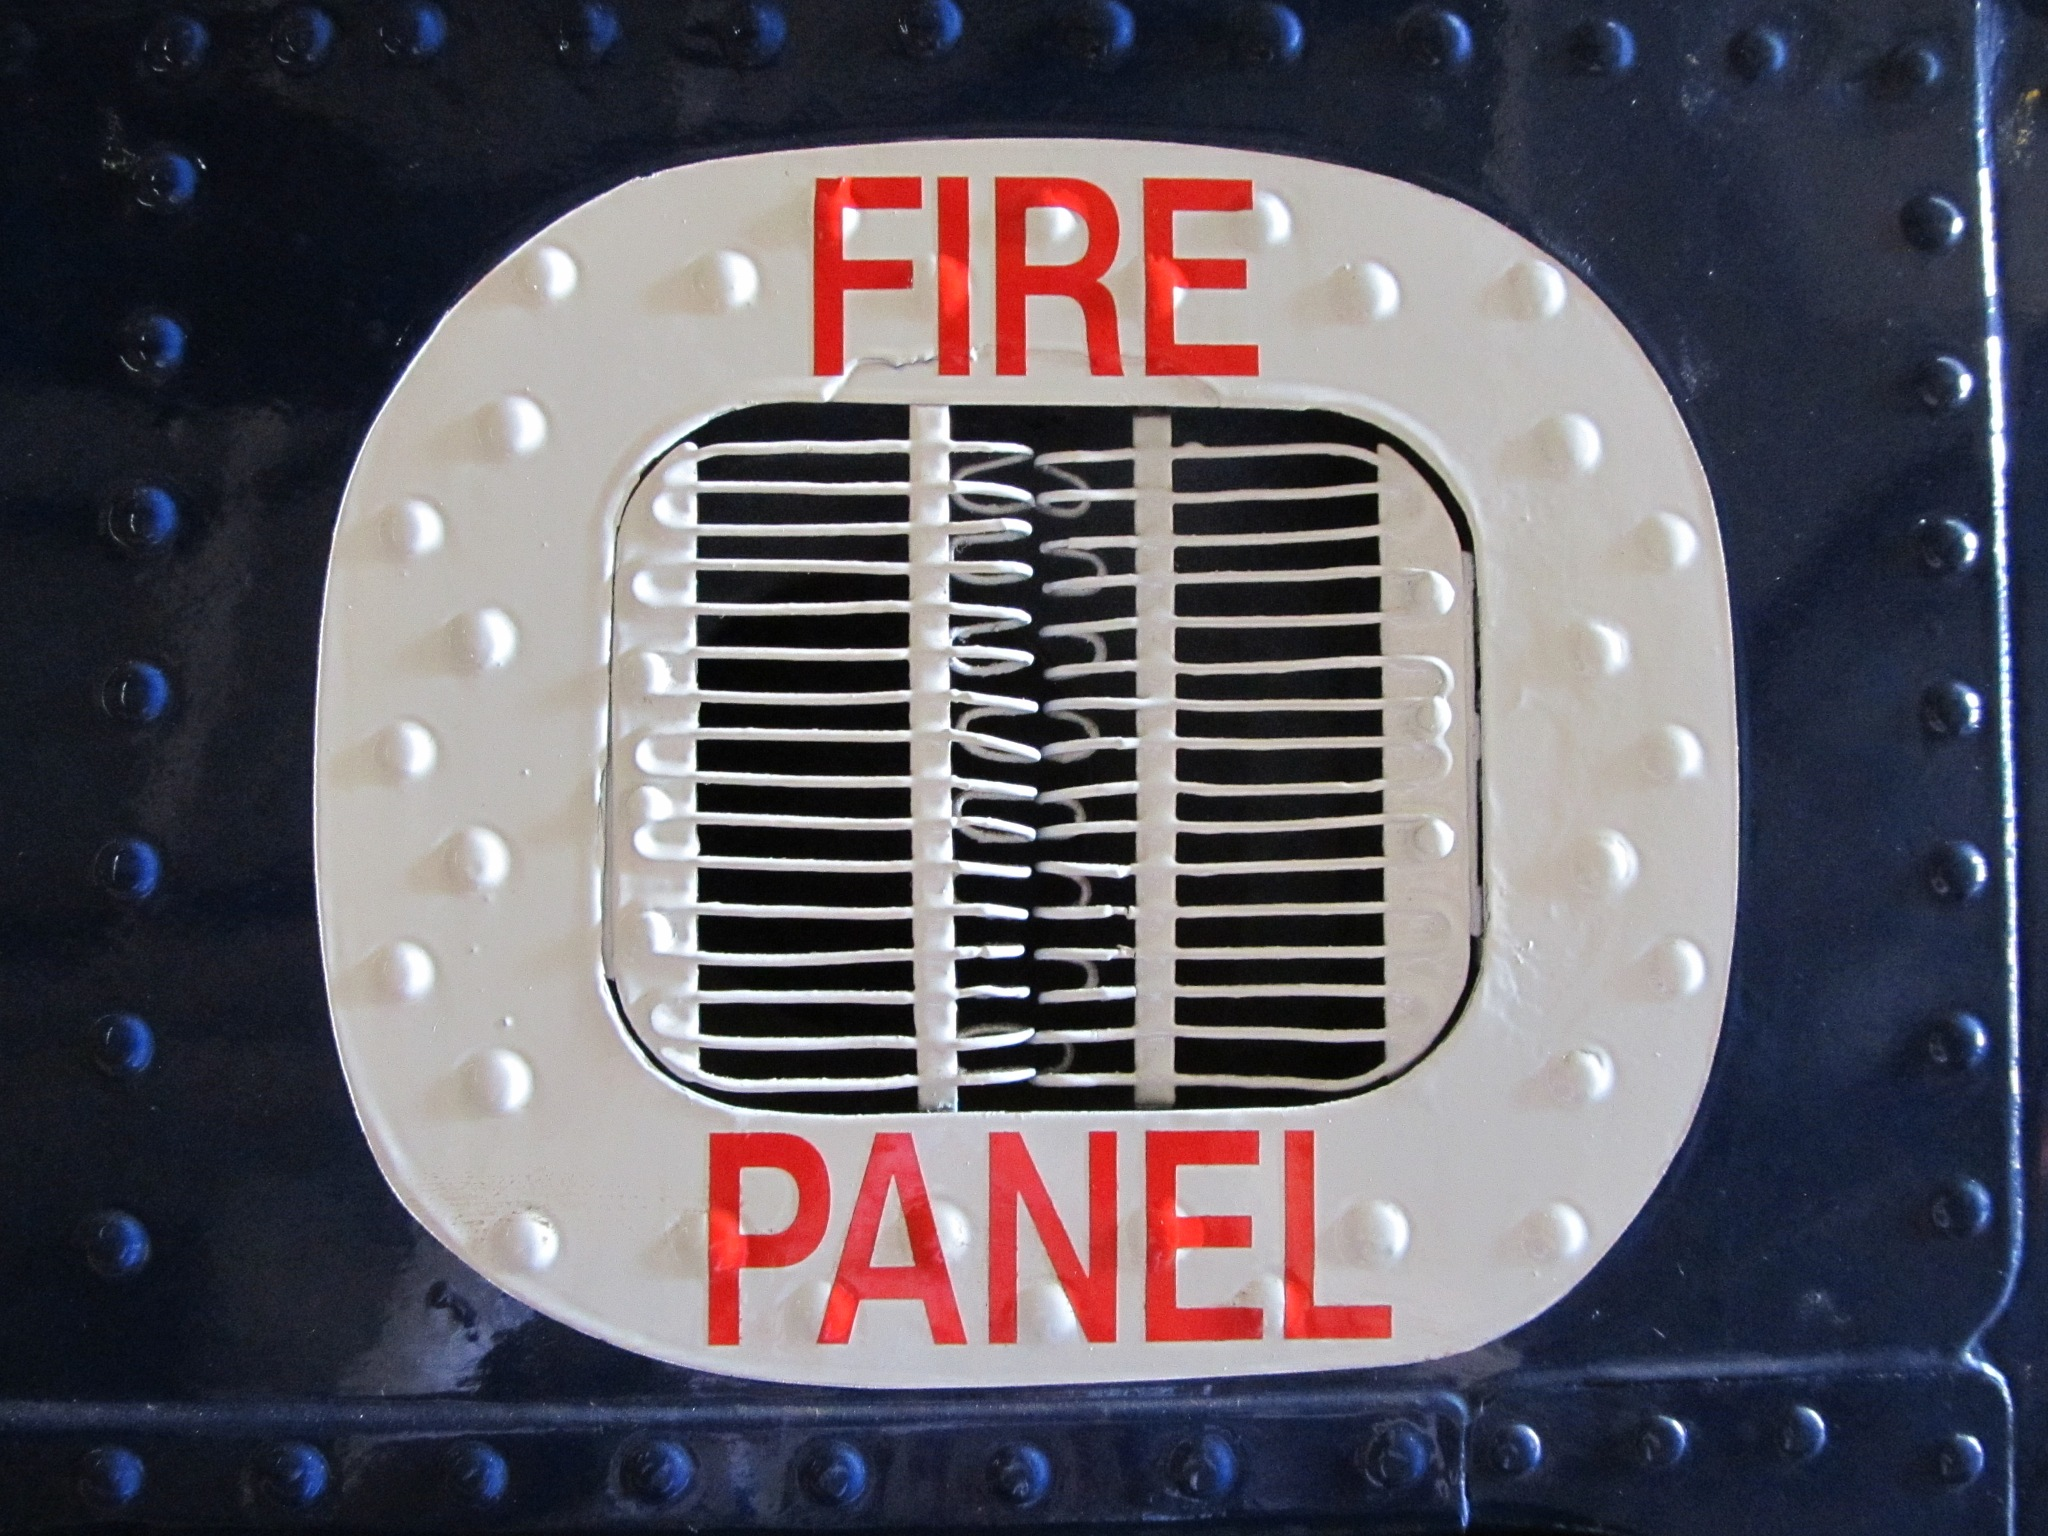 Fire Panel by Craig Wish